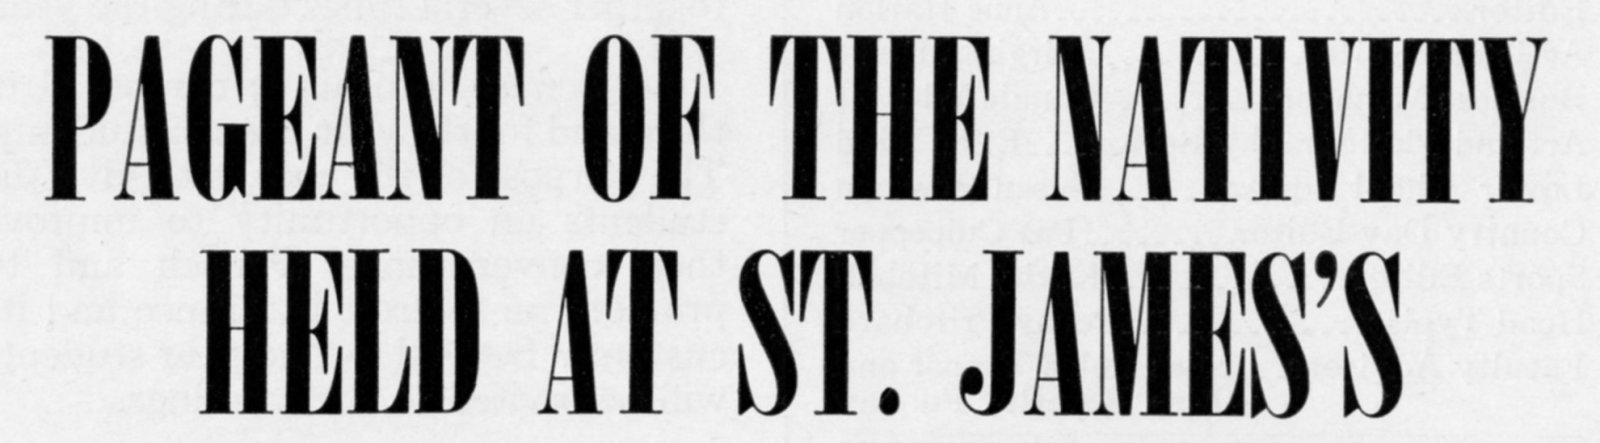 ""\""""Pageant of the Nativity Held at St. James's"""" headline detail in The Match, December 1958""1600|443|?|en|2|f6af5d5e62fcd11b0e2eee32eee3e22d|False|UNLIKELY|0.35861843824386597